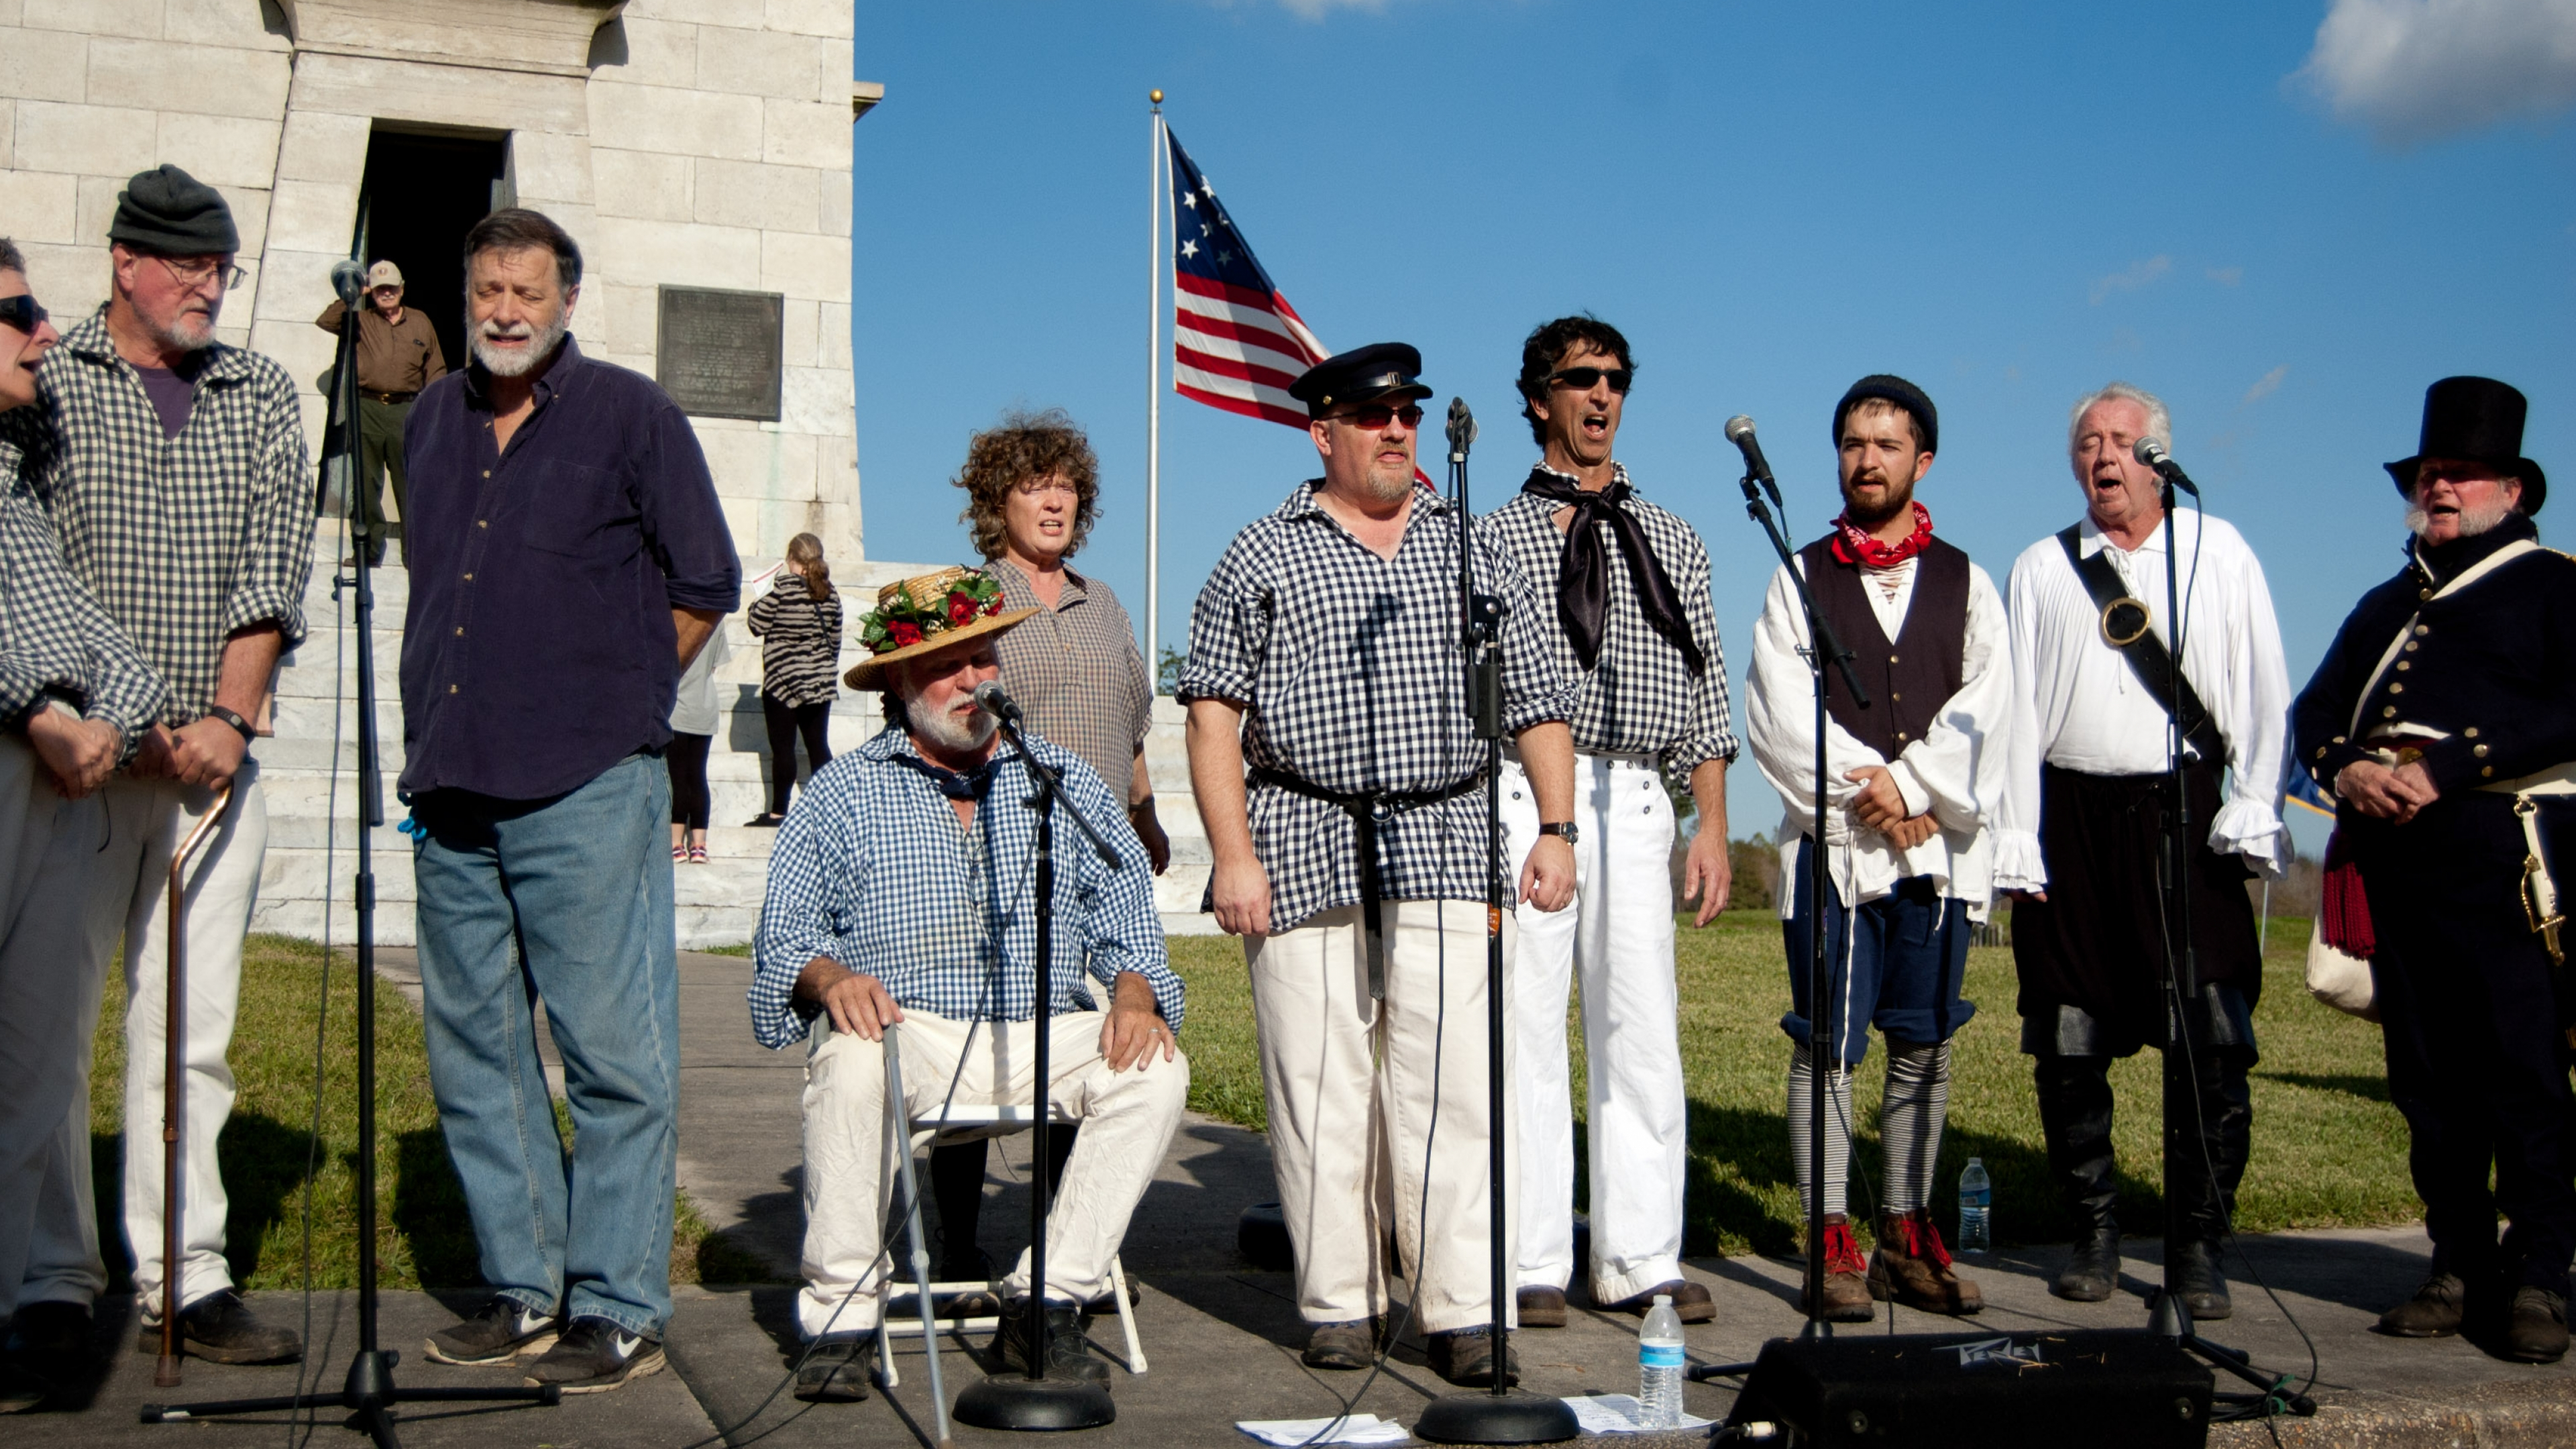 The men of No Quarter Shanty Krew singing outside in the sun at New Orleans Jazz National Historical Park